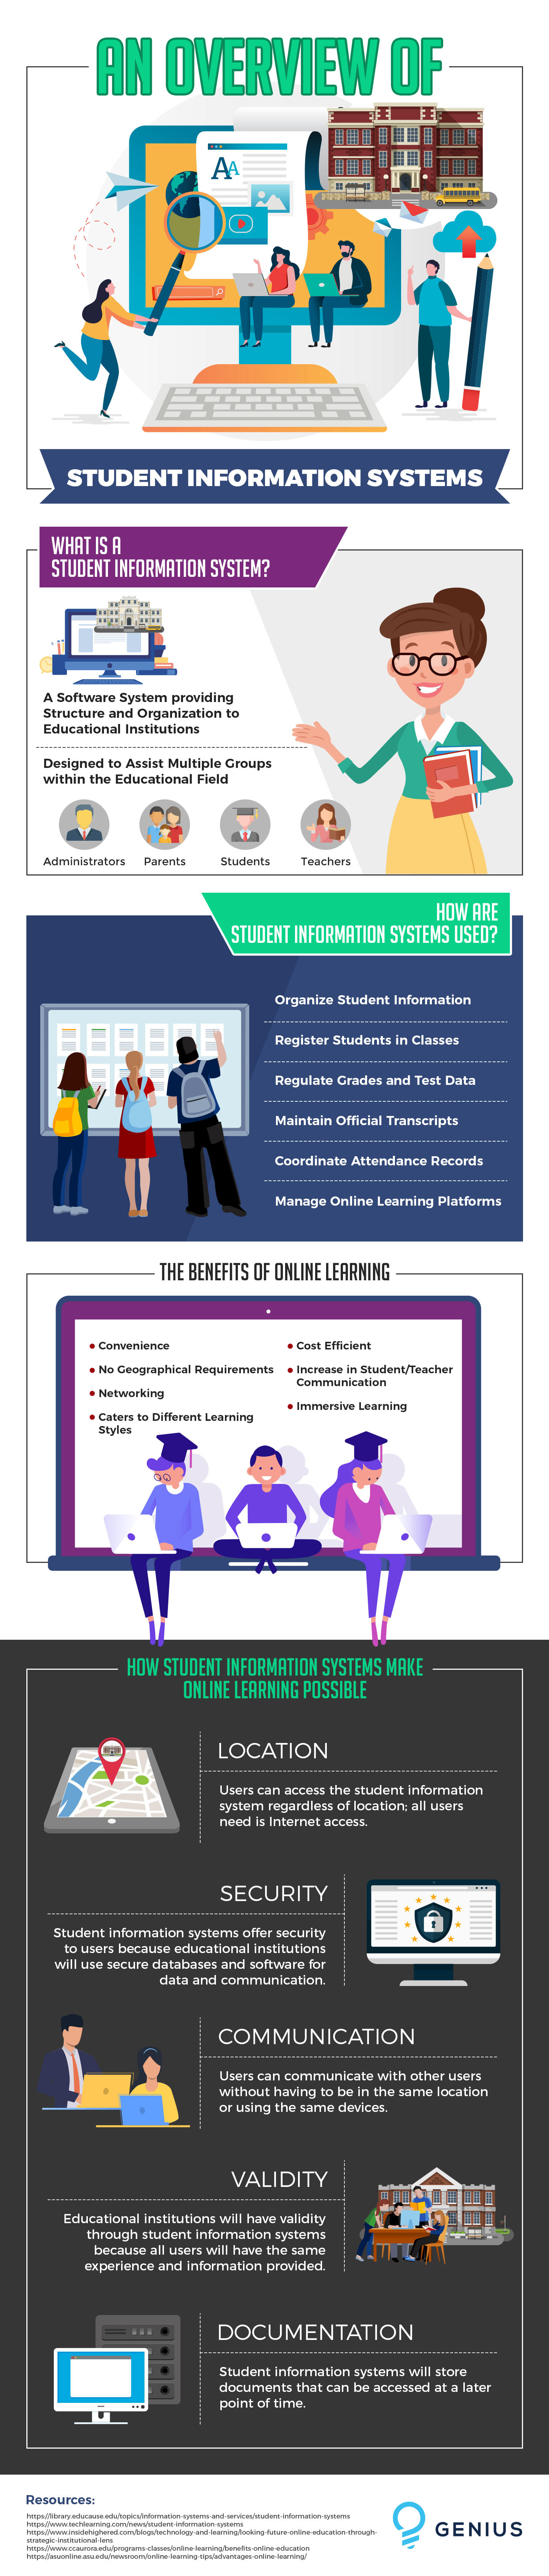 An Overview of Student Information Systems